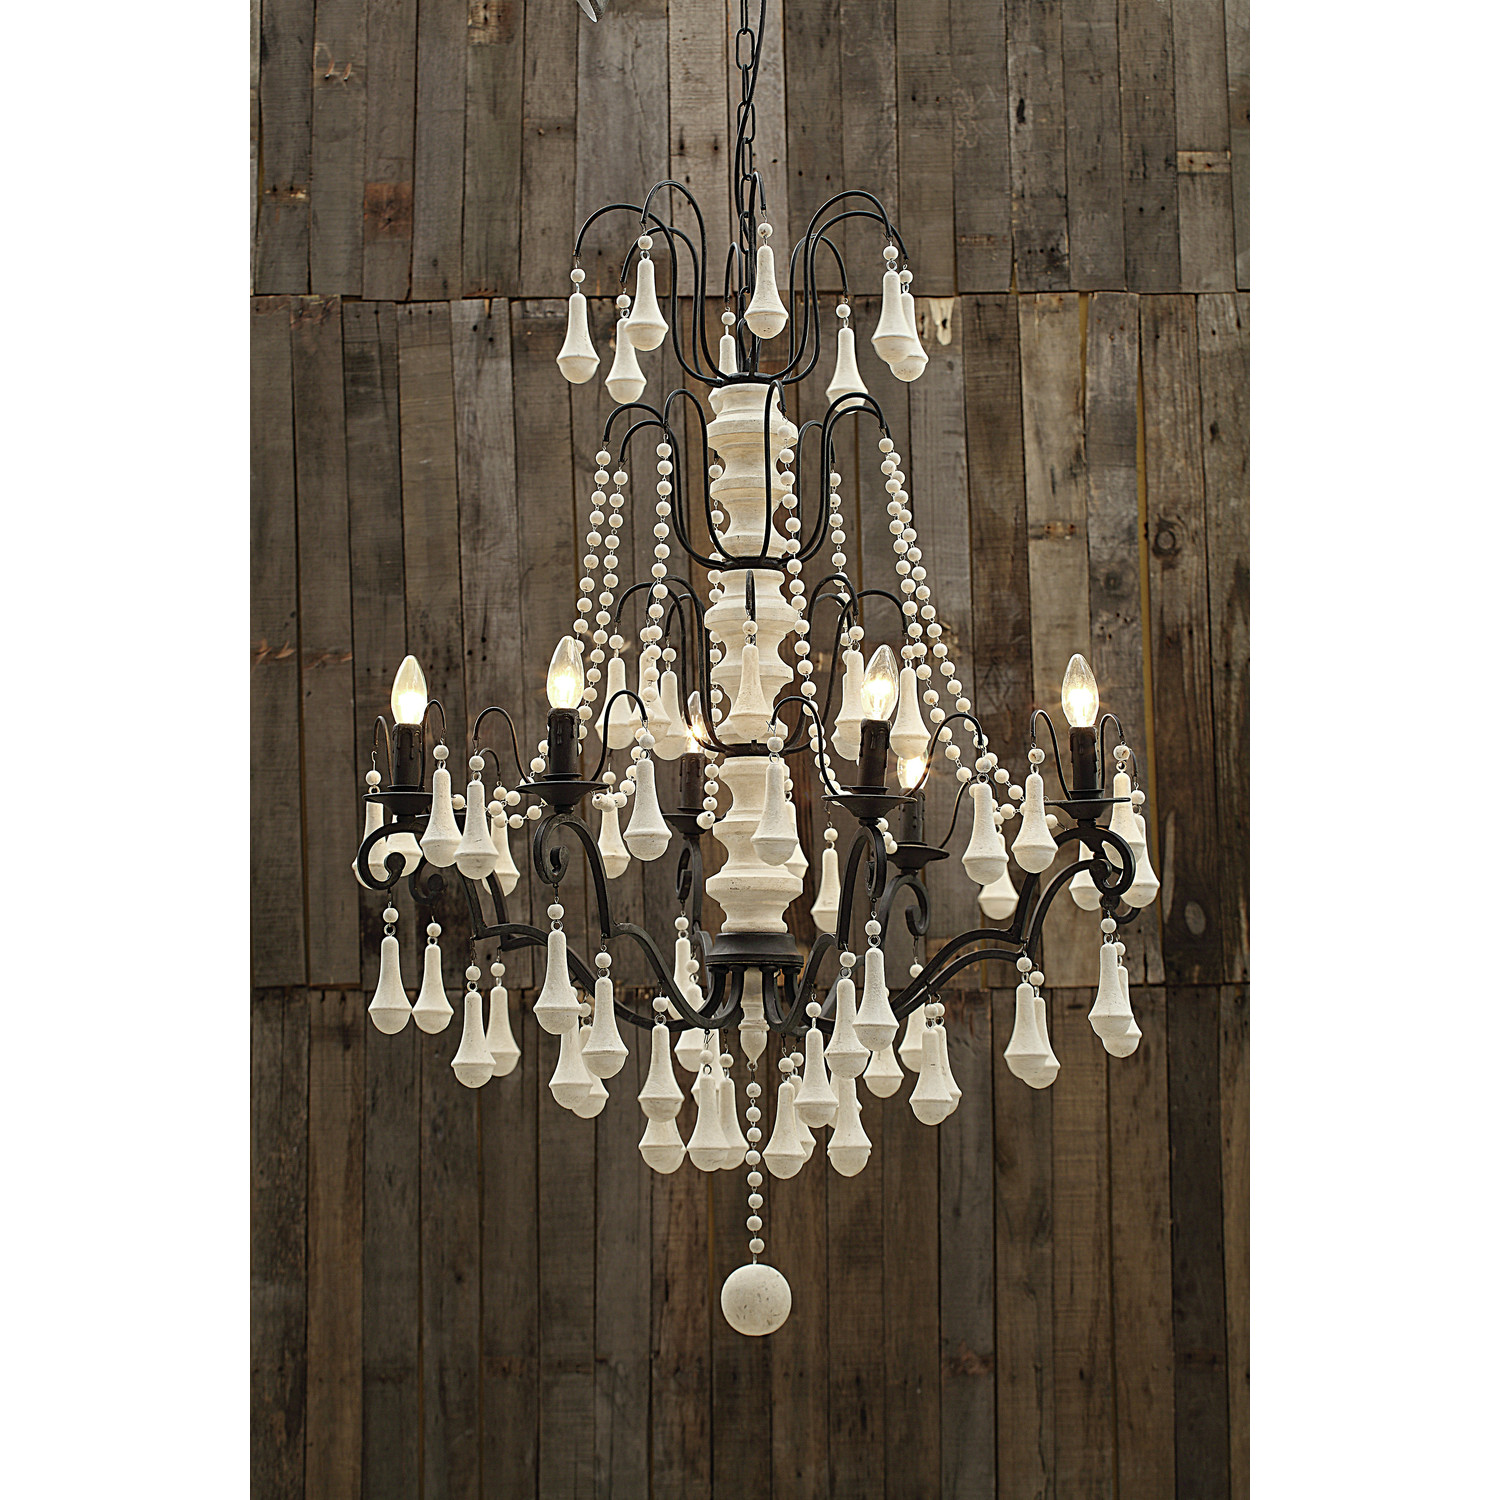 Endearing white wood bead chandelier with Ceiling Light Fixture Furnishing for living room Ideas